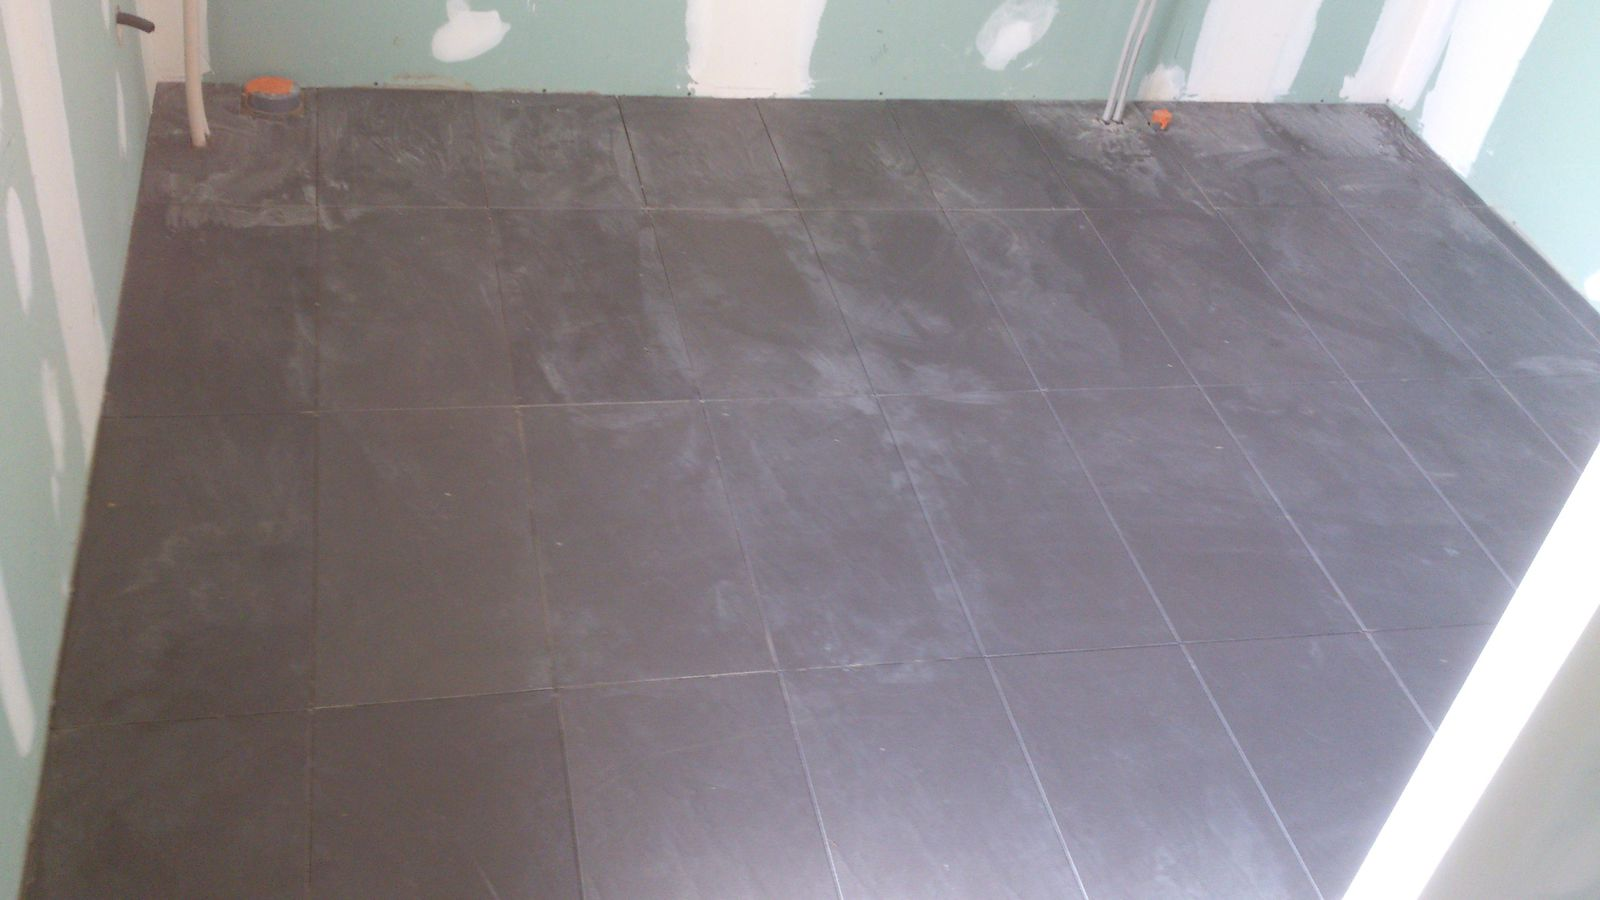 Renovation d 39 une fermette en bourgogne r novation d 39 une for Pose de joint carrelage